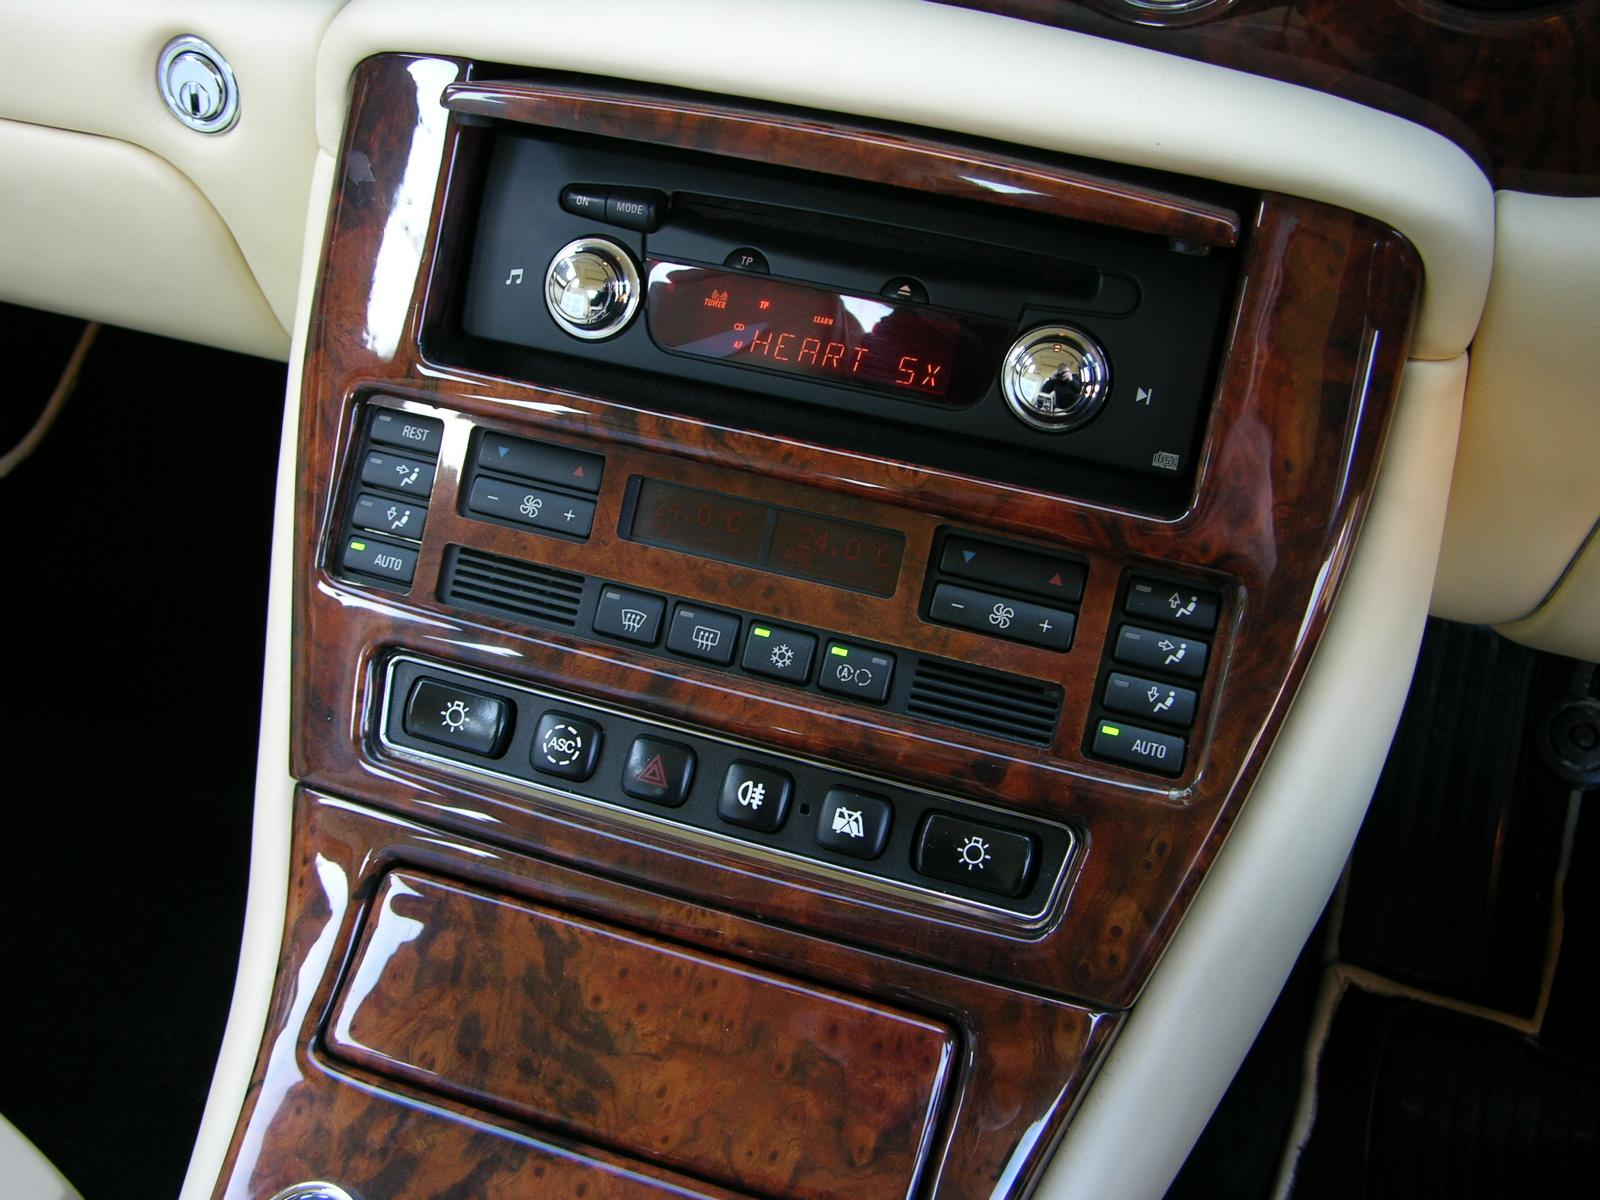 File2001 bentley arnage red label flickr the car spy 8g file2001 bentley arnage red label flickr the car spy 8 vanachro Choice Image